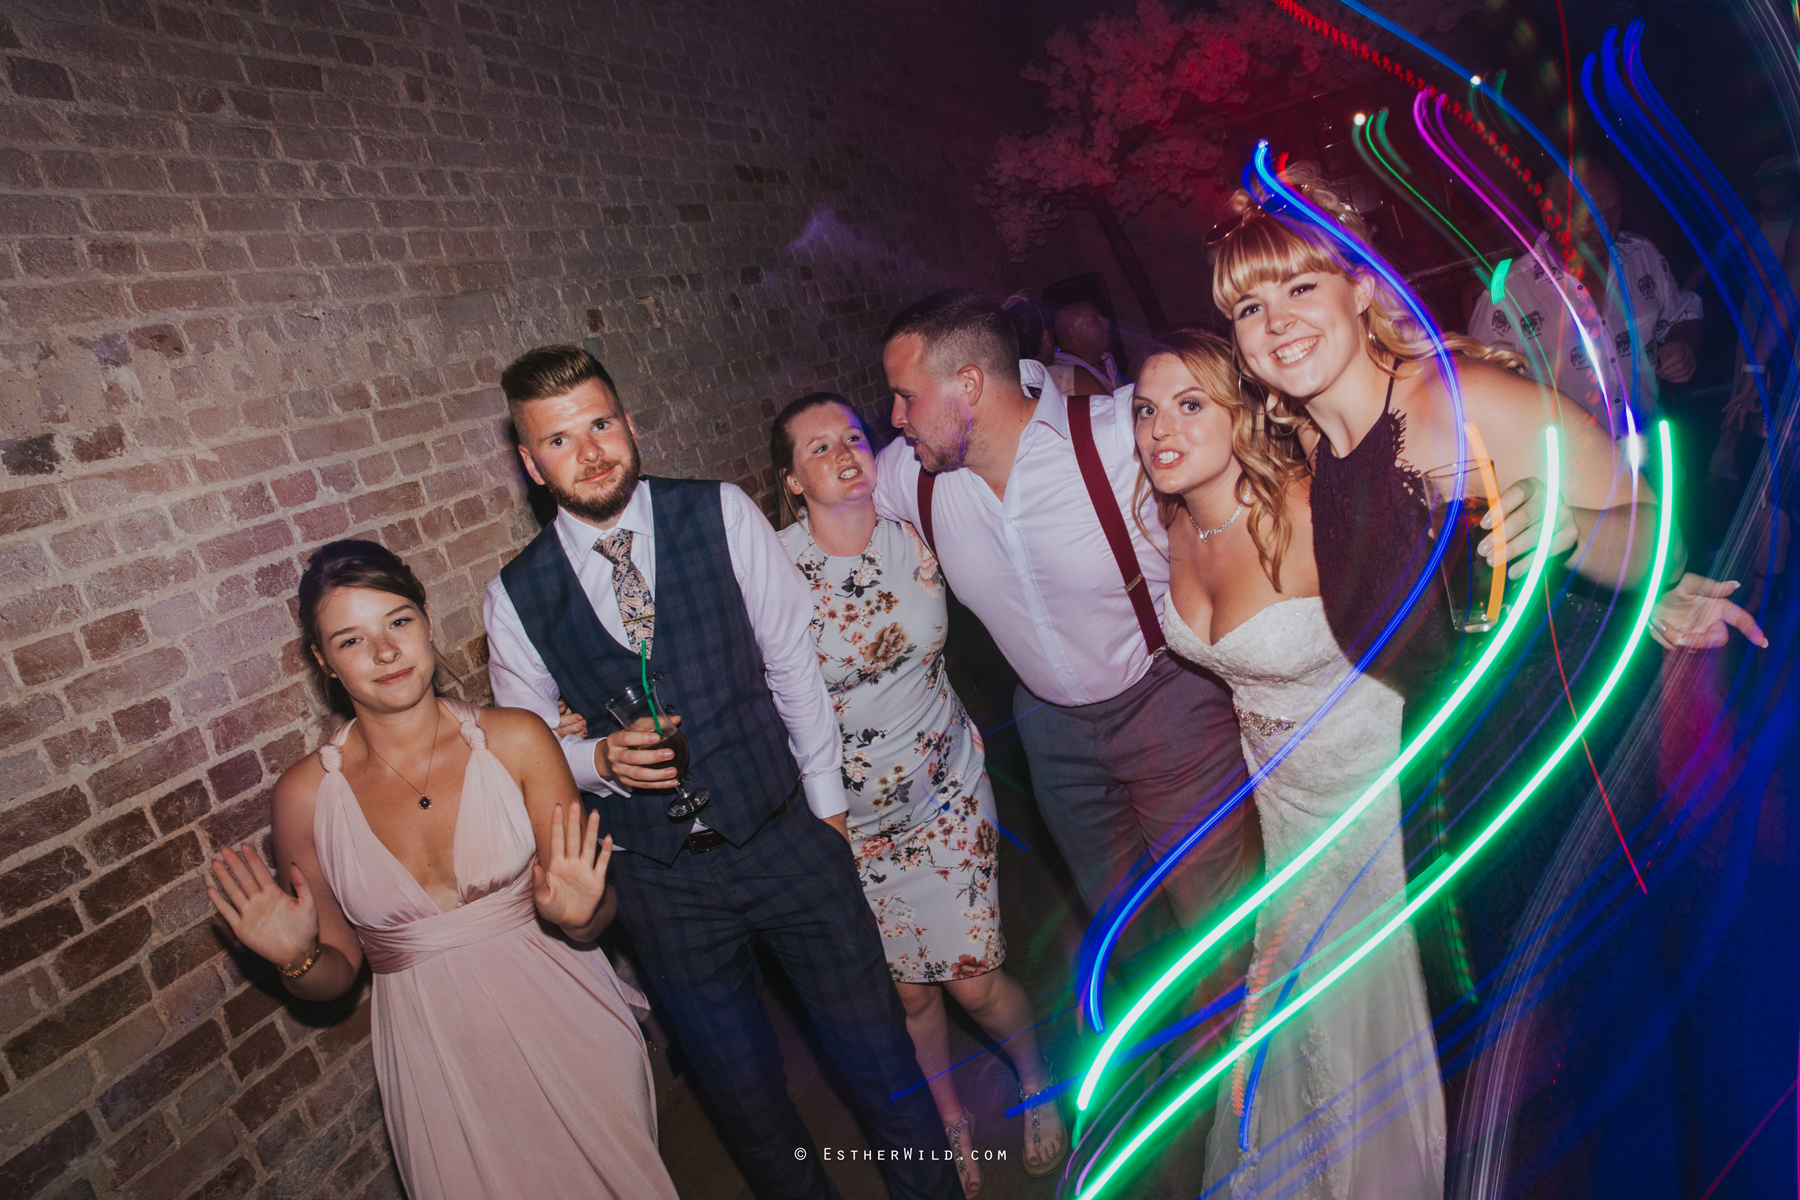 Kimberley_Hall_Wedding_Norfolk_Photography_Esther_Wild_IMG_2689.jpg